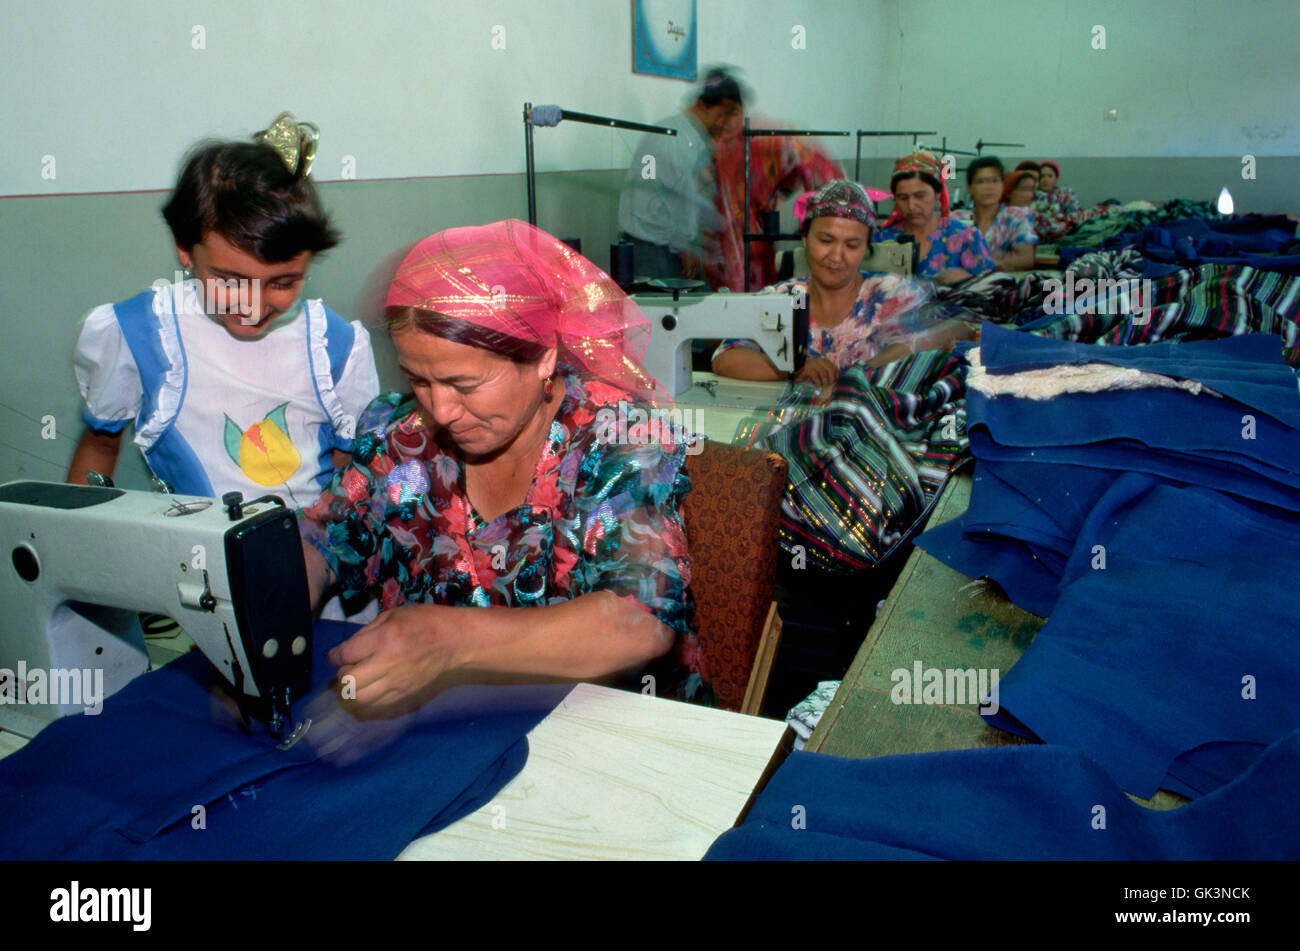 ca. 1980-1997, Marghilon, Uzbekistan --- Seamstresses make clothing in a factory sewing room. --- Image by © - Stock Image